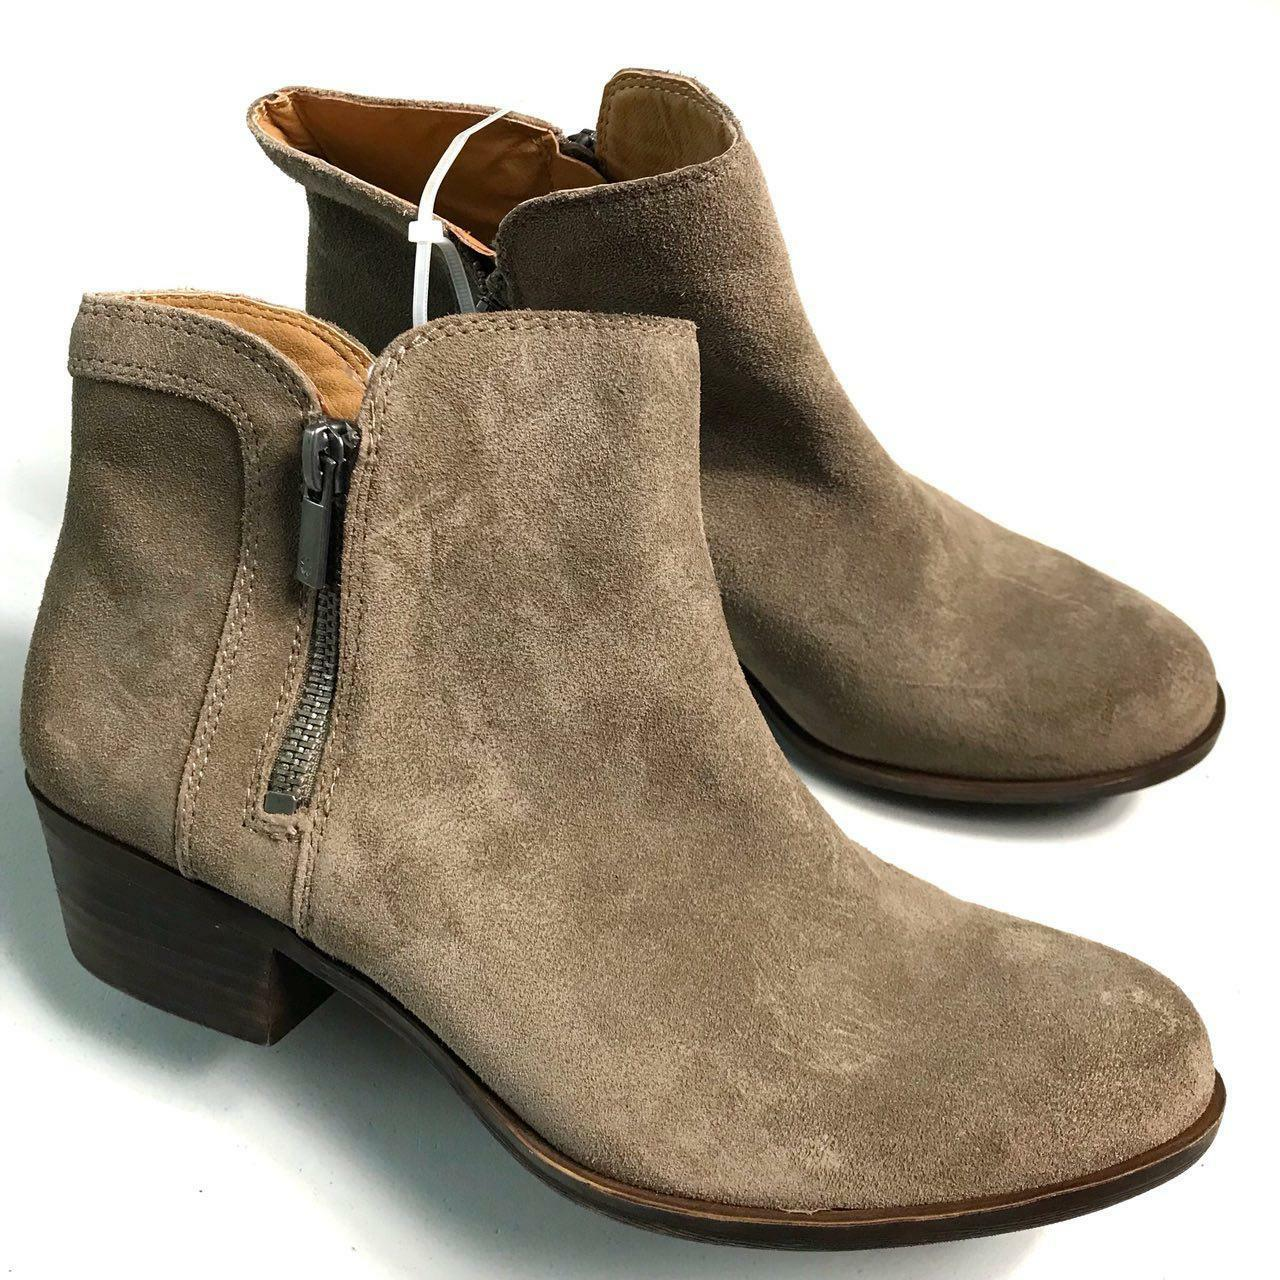 Lucky Brand Women's Tan Suede Ankle Boots Size 8.5M New